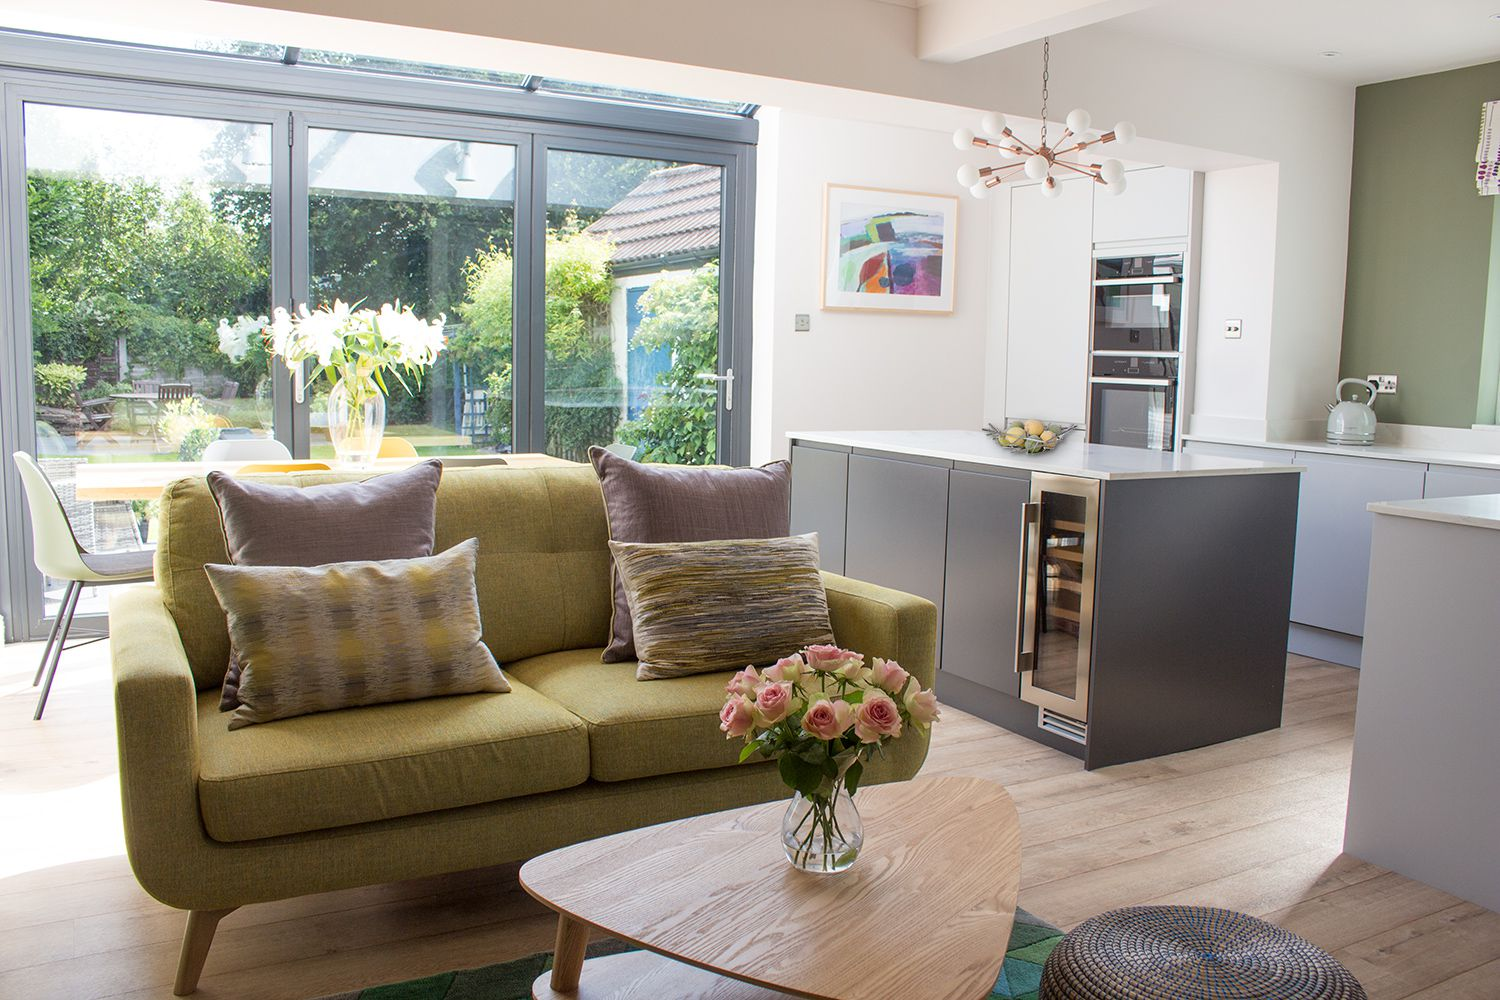 A photo of the pale green sofa, oak coffee table and the kitchen area and dining table behind.